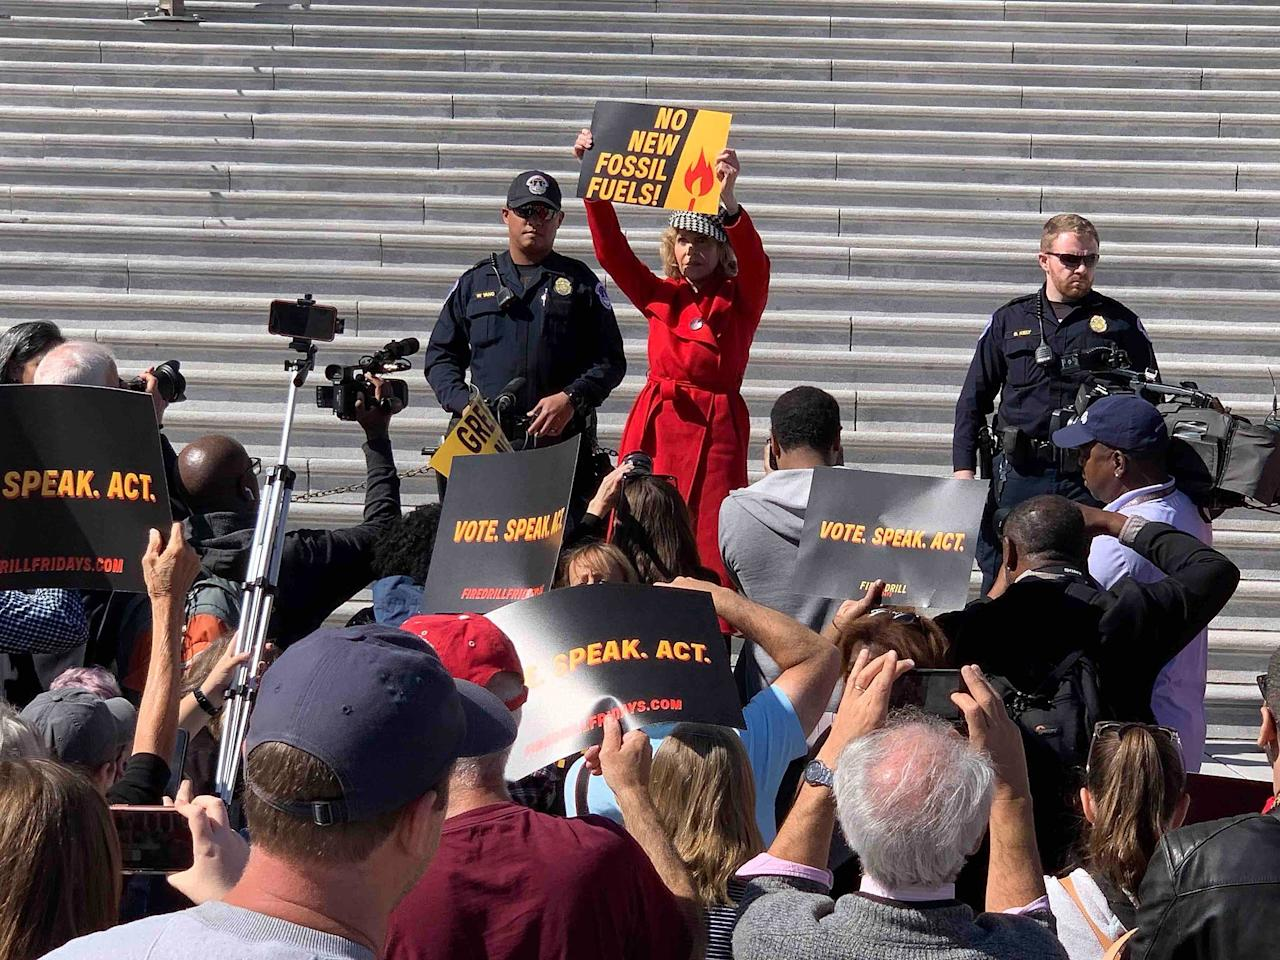 "The 81-year-old actress was arrested on the steps of the United States Capitol while protesting against climate change on Friday, Oct. 11, 2019.   Fonda had been open about the fact that she planned to be arrested, saying that she would be protesting for the next 14 Fridays. She told <em>The Washington Post</em>, ""I'm going to take my body, which is kind of famous and popular right now because of the [Netflix] series [<em>Grace and Frankie</em>] and I'm going to go to D.C. and I'm going to have a rally every Friday.""   The actress added, ""It'll be called 'Fire Drill Friday.' And we're going to engage in civil disobedience and we're going to get arrested every Friday.""  As predicted, <a href=""https://people.com/crime/jane-fonda-sam-waterston-arrested-capitol-climate-change/"">she was arrested again</a> on Oct. 18, this time, reportedly, with fellow actor Sam Waterston. Before her arrest, Fonda spoke about her mission, and praised the proposed <a href=""https://people.com/politics/alexandria-ocasio-cortez-burlesque-show-green-new-deal-chants/"">Green New Deal</a>, an ambitious legislative undertaking to address climate change.  ""This will be a huge, disruptive, super-ambitious undertaking. And yes, it's going to cost a whole lot of money. But the cost of inaction is even huger.""  Fonda is no stranger to standing up for what she believes in: she <a href=""https://www.washingtonpost.com/news/retropolis/wp/2017/09/18/how-jane-fondas-1972-trip-to-north-vietnam-earned-her-the-nickname-hanoi-jane/"">was active in the Black Panthers</a> in the early '70s, and famously garnered both praise and criticism over the years for her anti-Vietnam War stance."